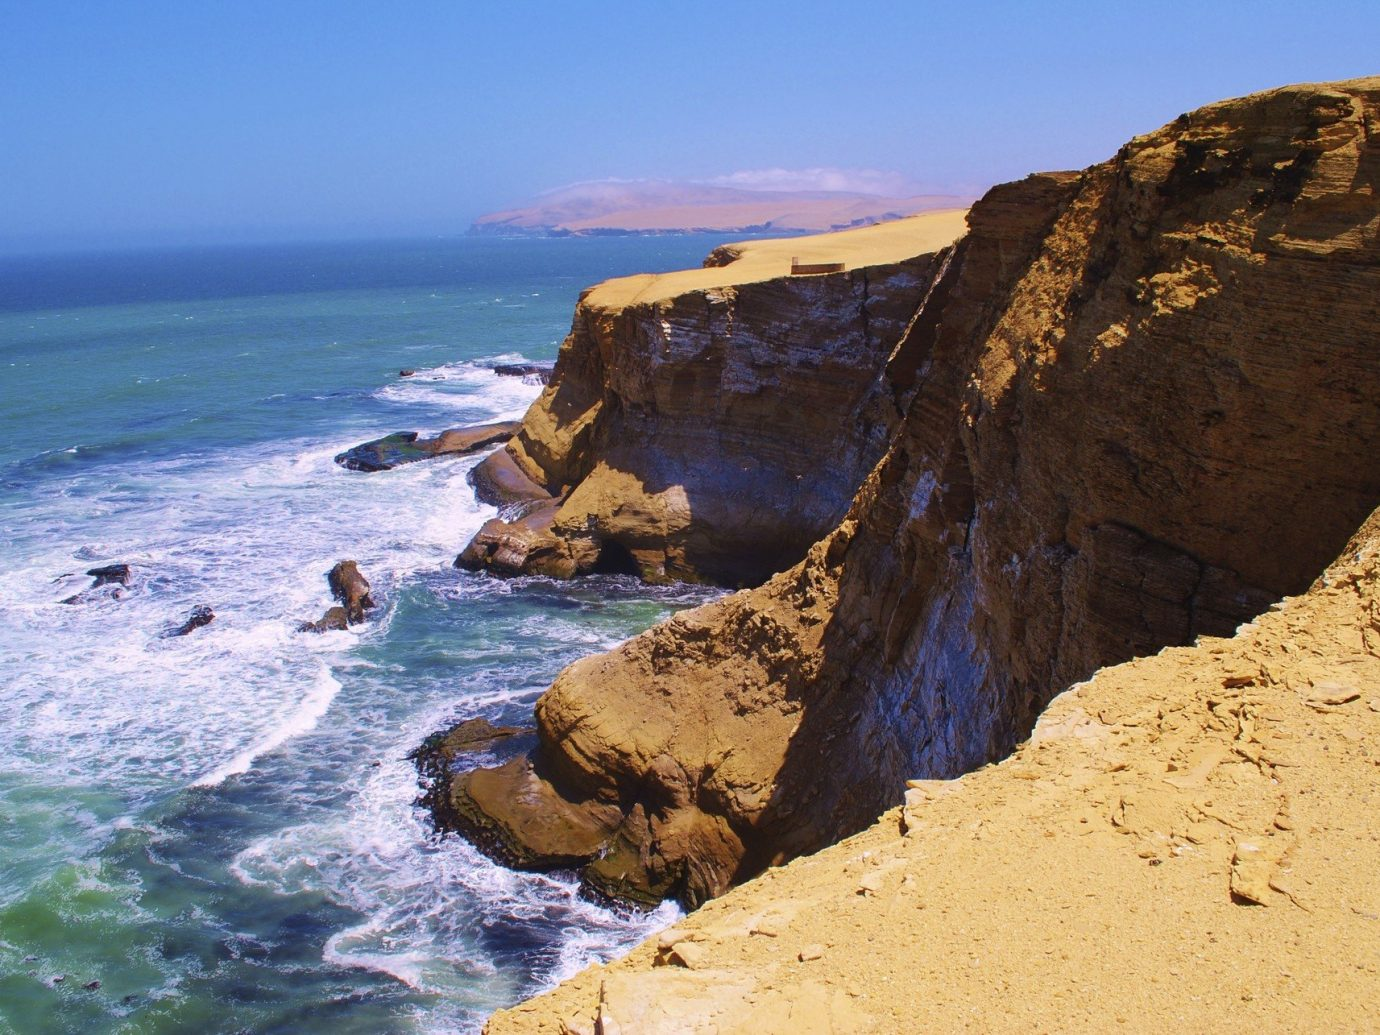 Trip Ideas sky outdoor rock Nature mountain Coast Sea shore cliff geographical feature landform Ocean body of water rocky Beach water terrain wave vacation cape landscape bay sand material cove formation geology stack